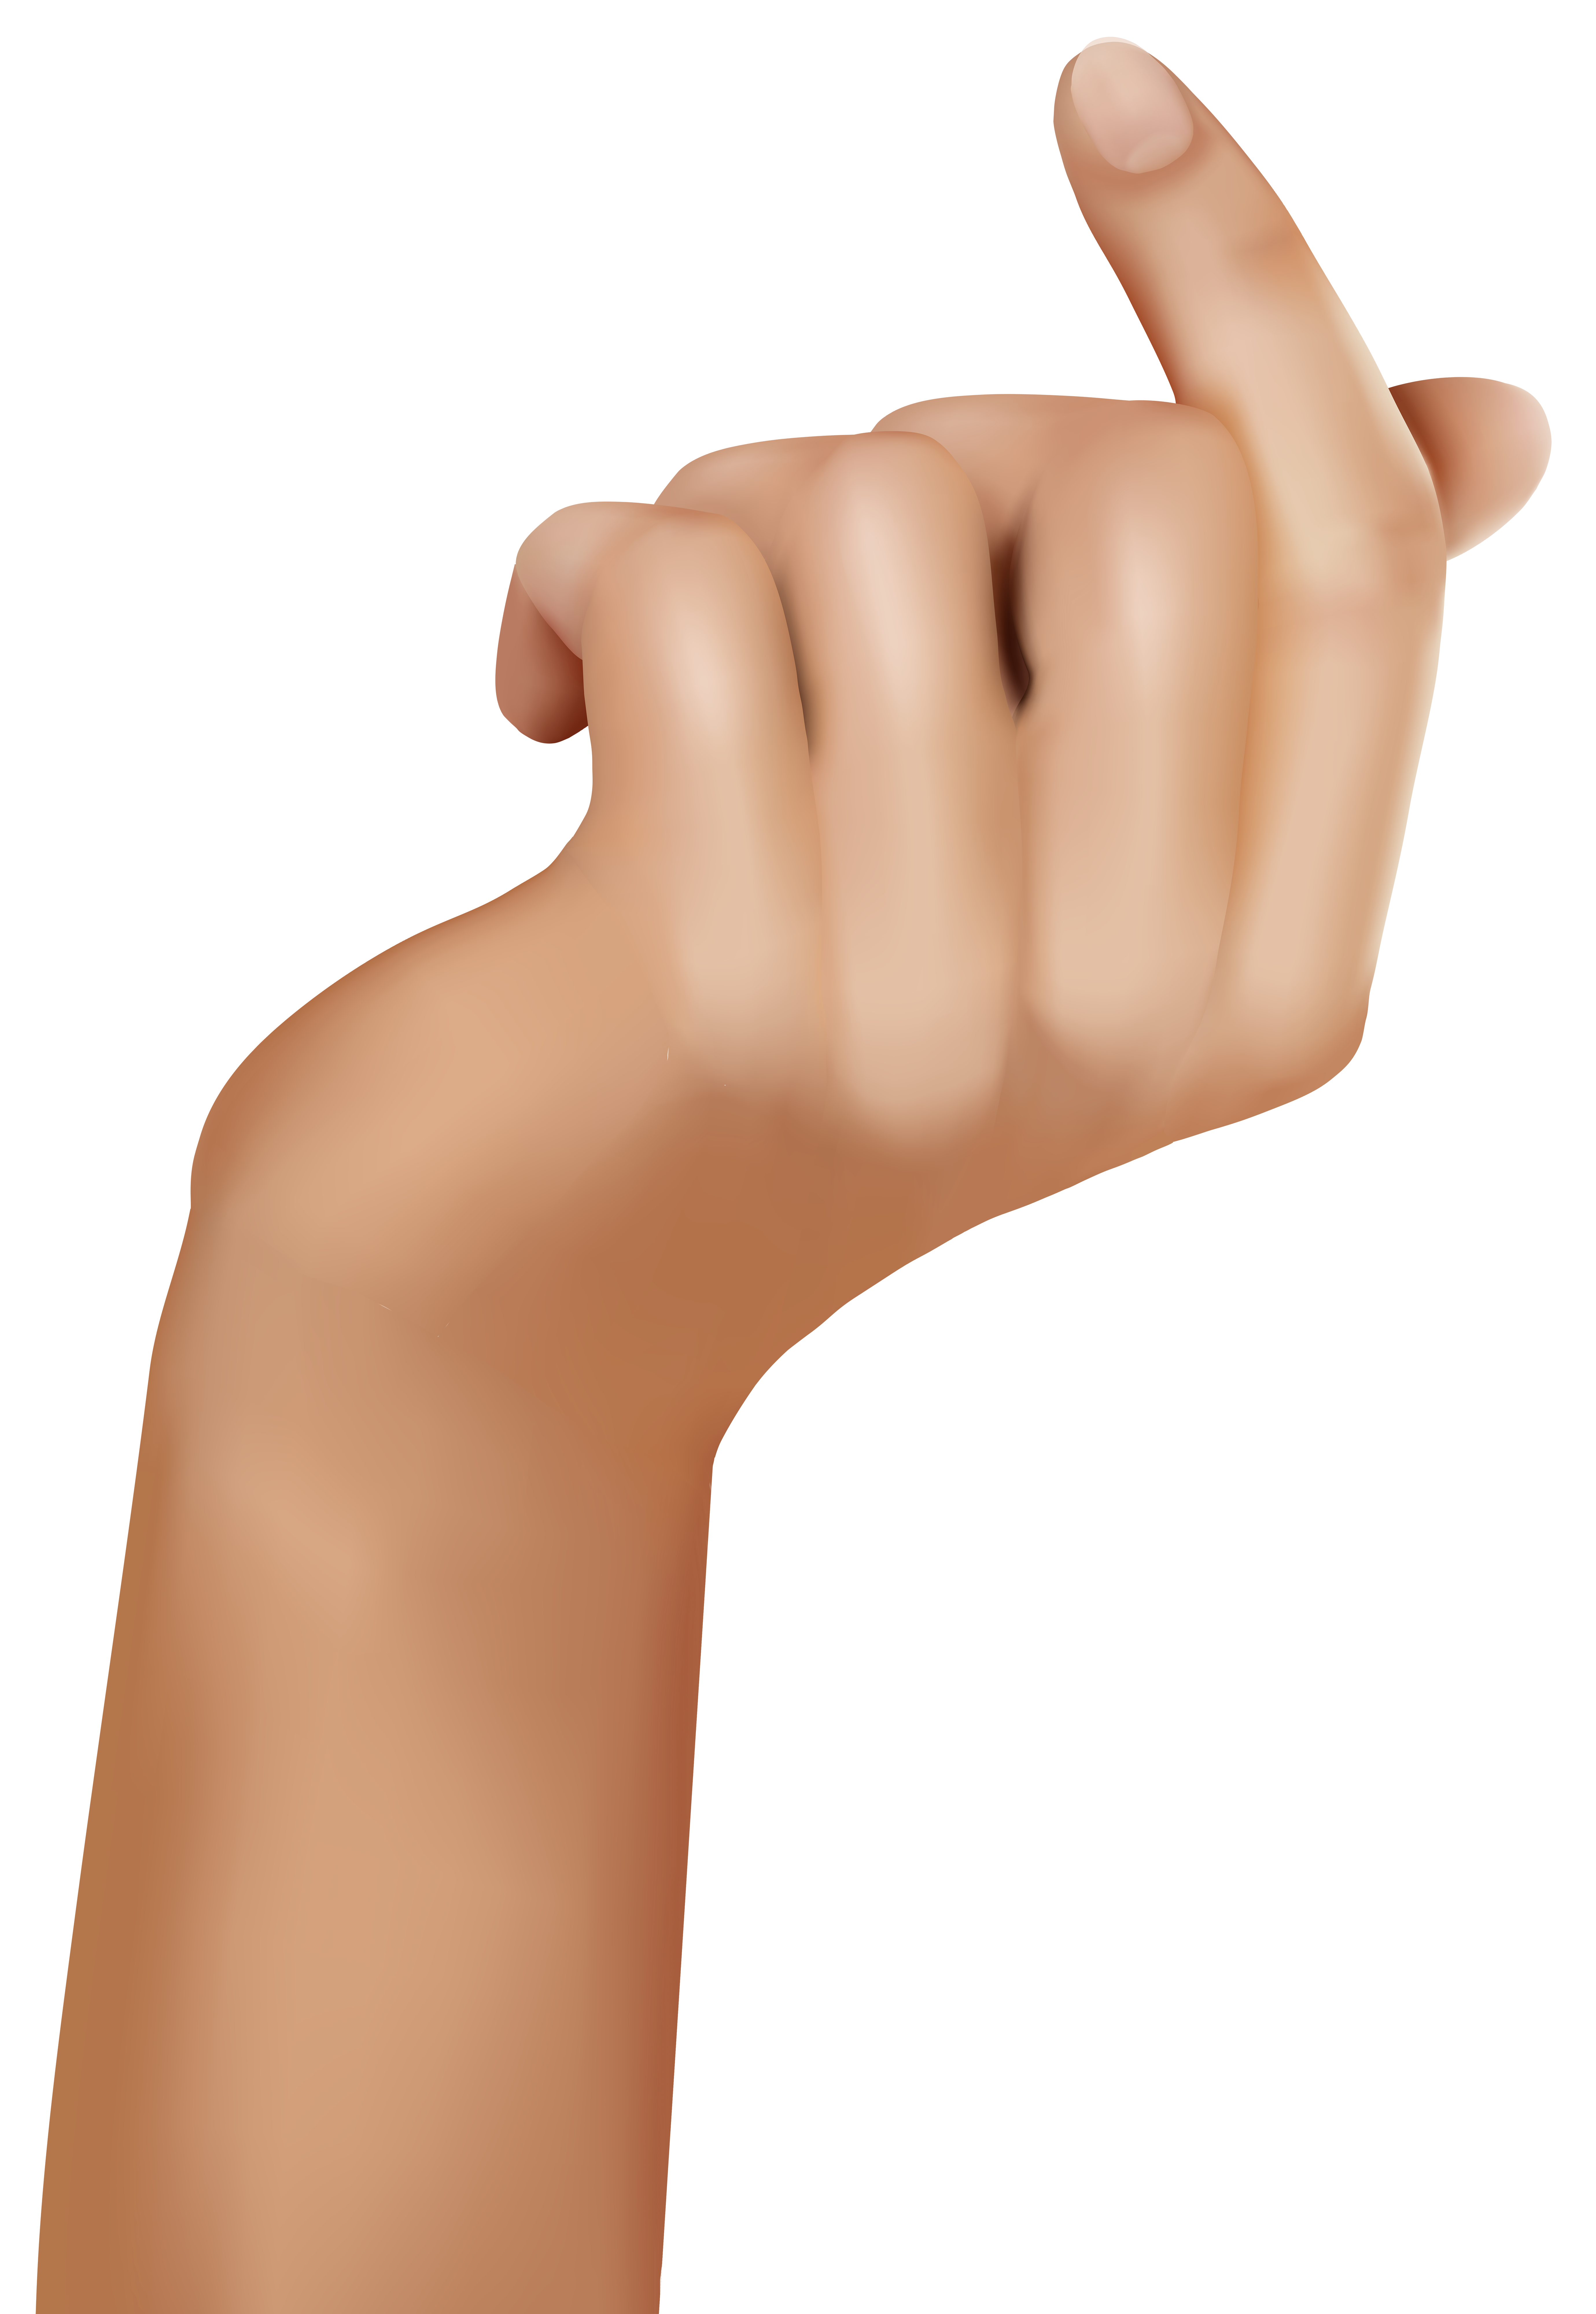 Female png clip art. Drink clipart hand holding